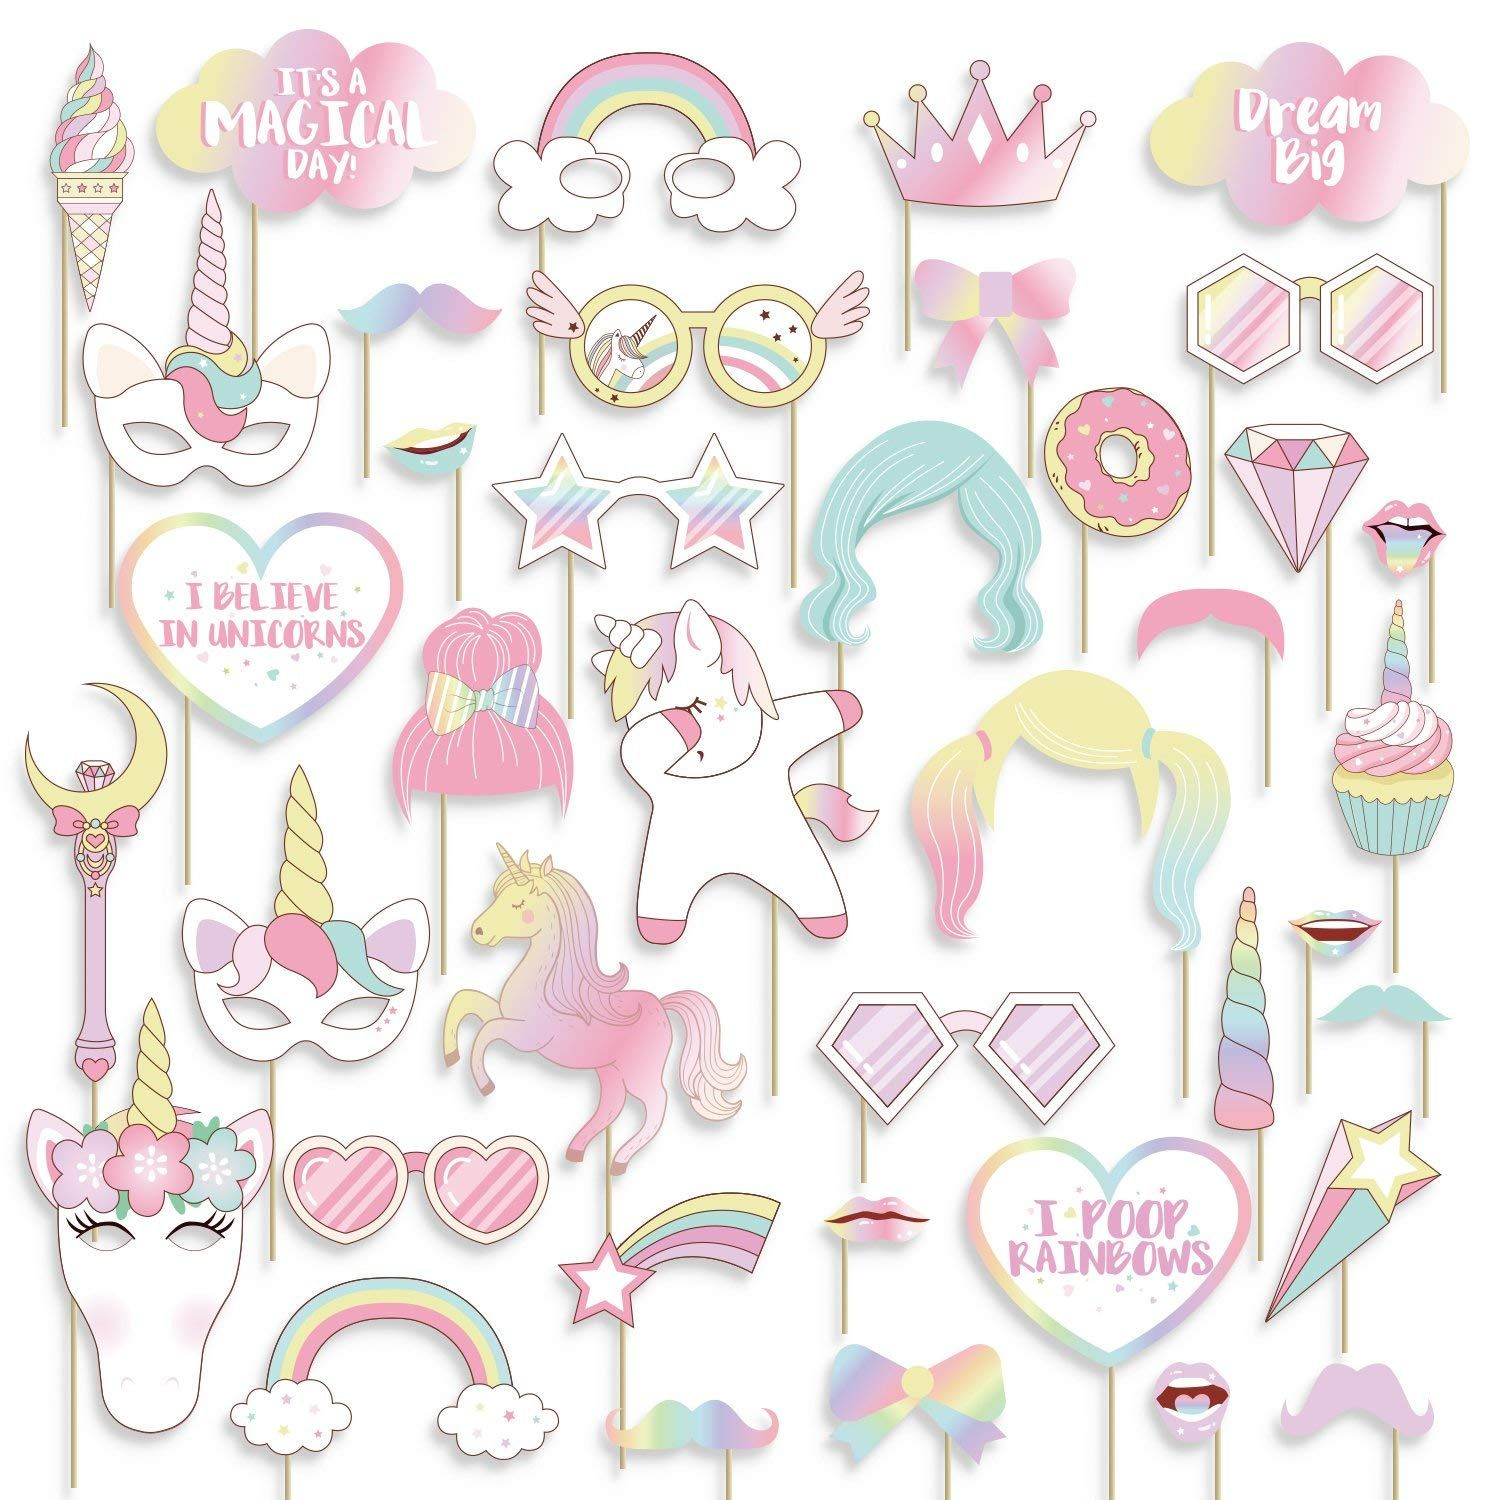 Amazon Is Offering Geefuun 40PCS Unicorn Photo Booth Props Rainbow Birthday Party Supplies Decorations On Sale For Just 49 When You Use Code 50N9EESL At